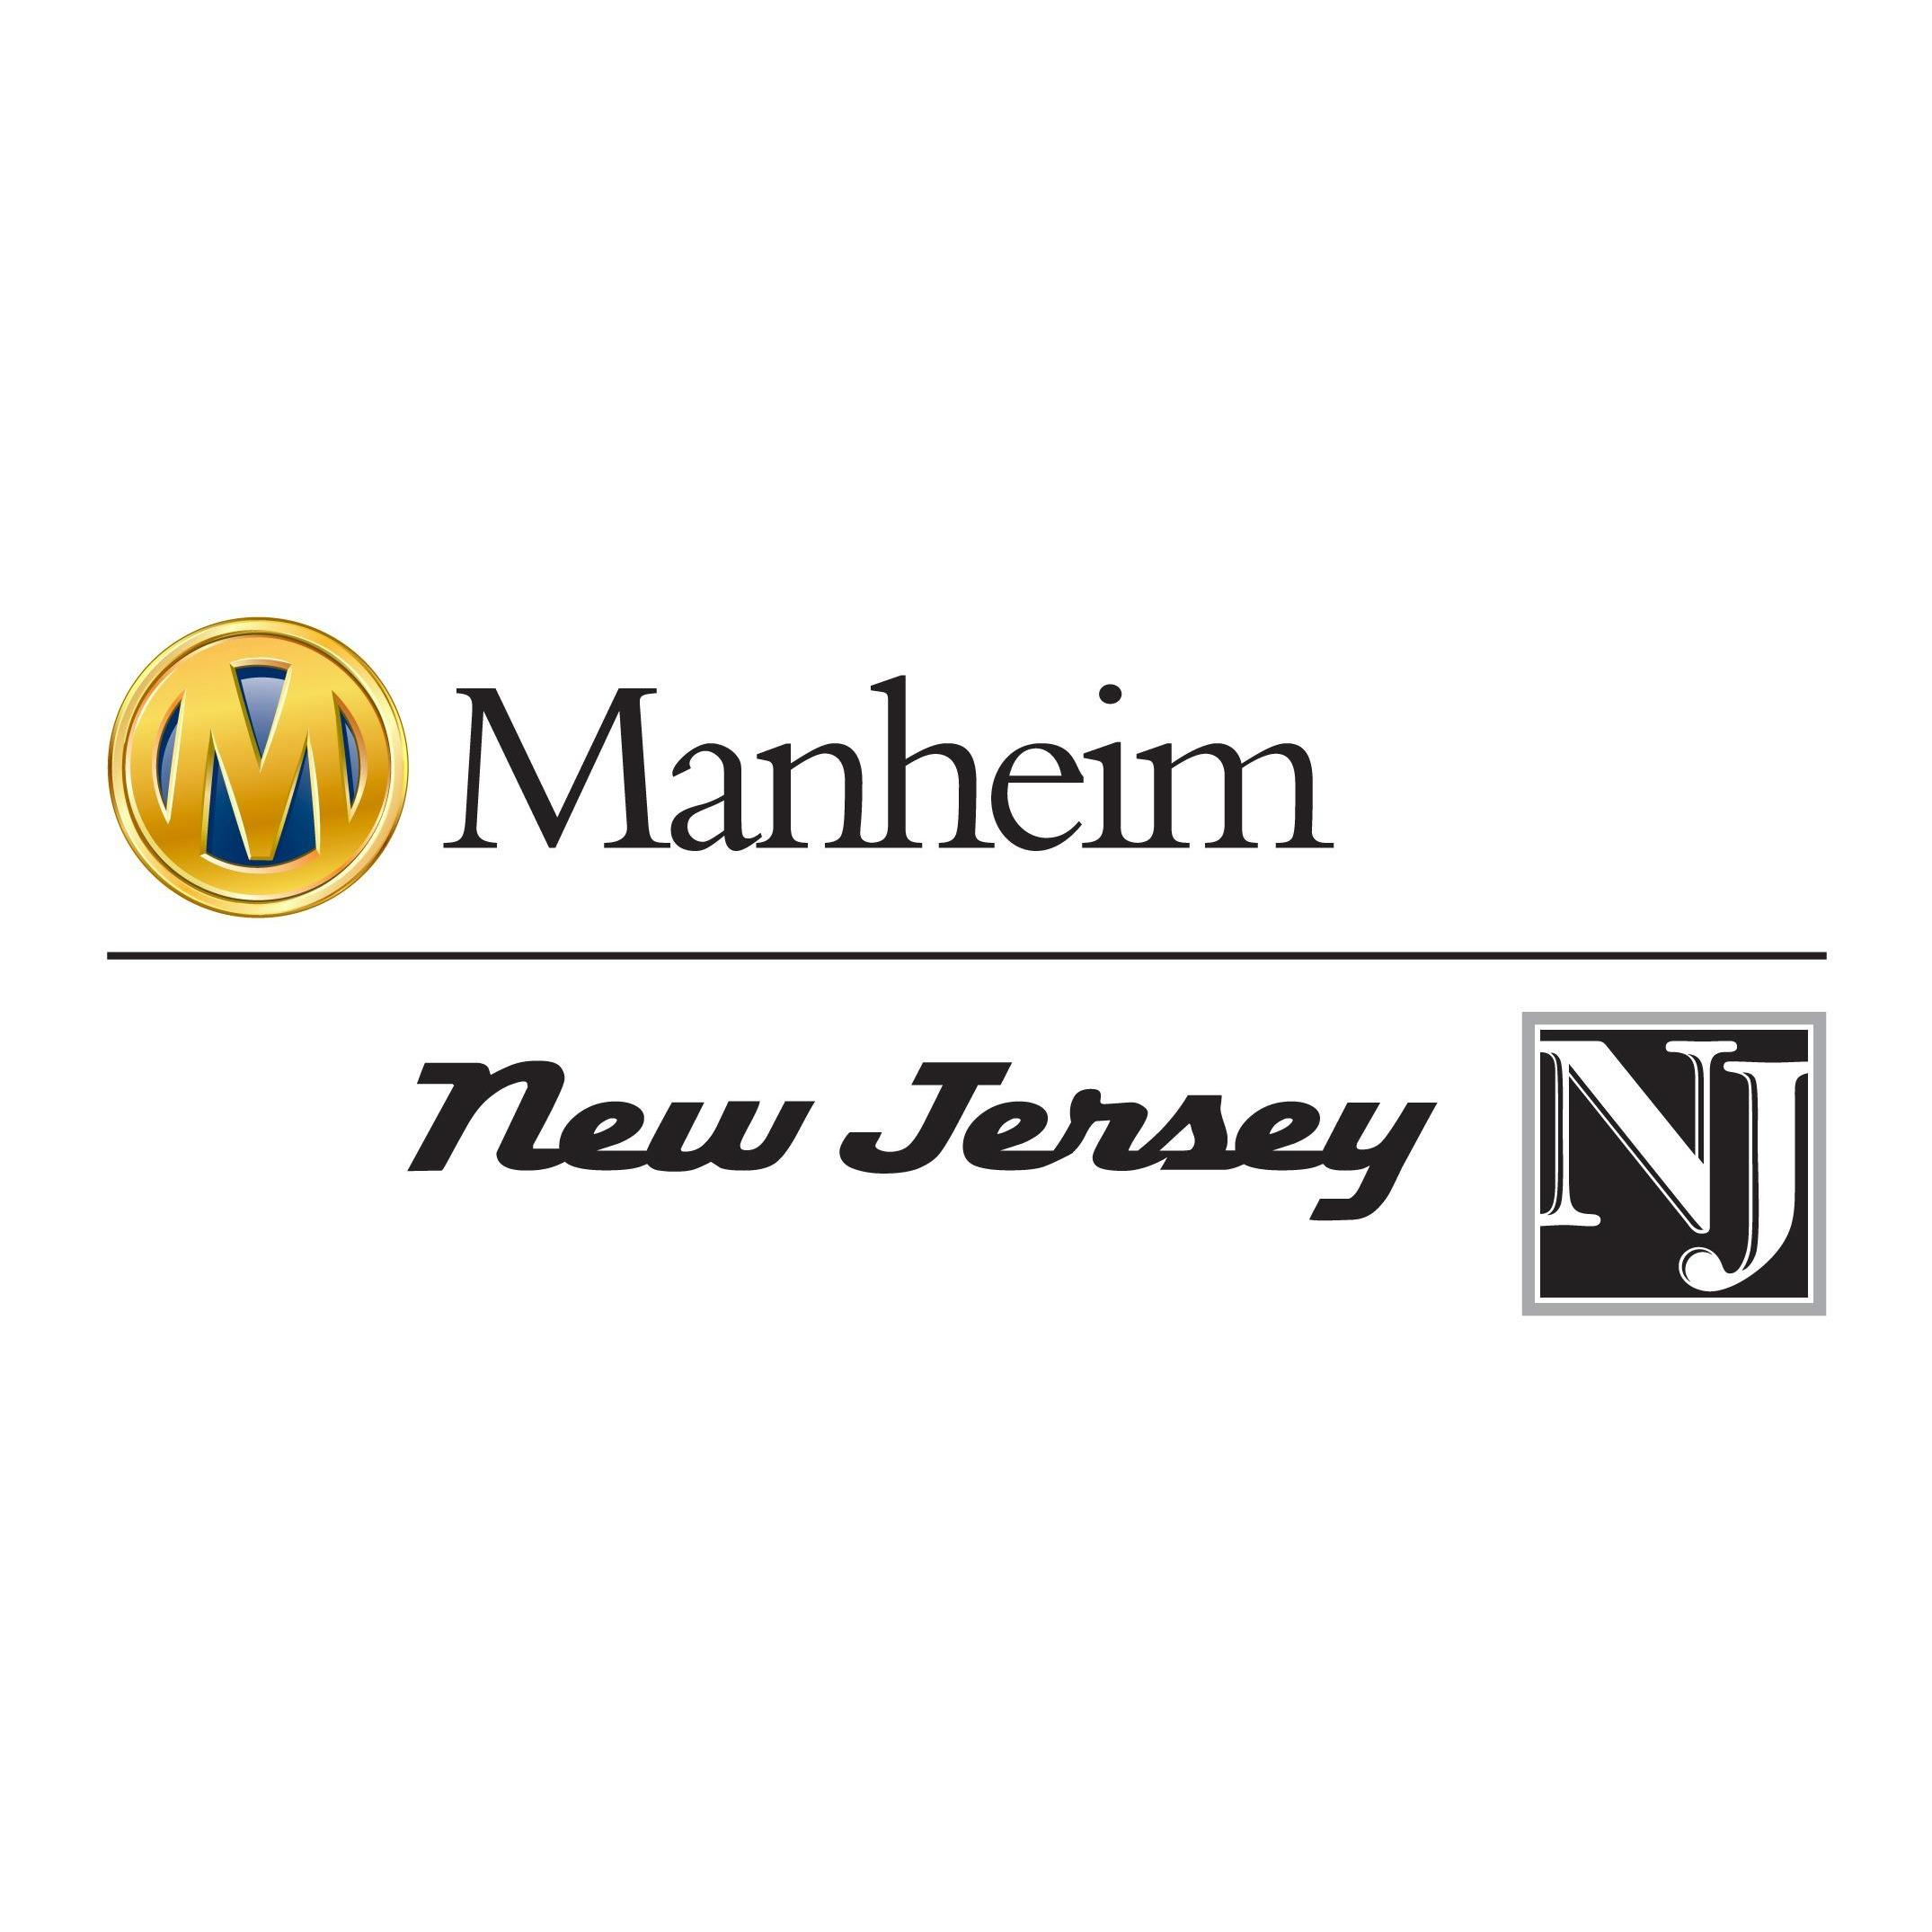 Manheim New Jersey at 730 Route 68 Bordentown NJ on Fave